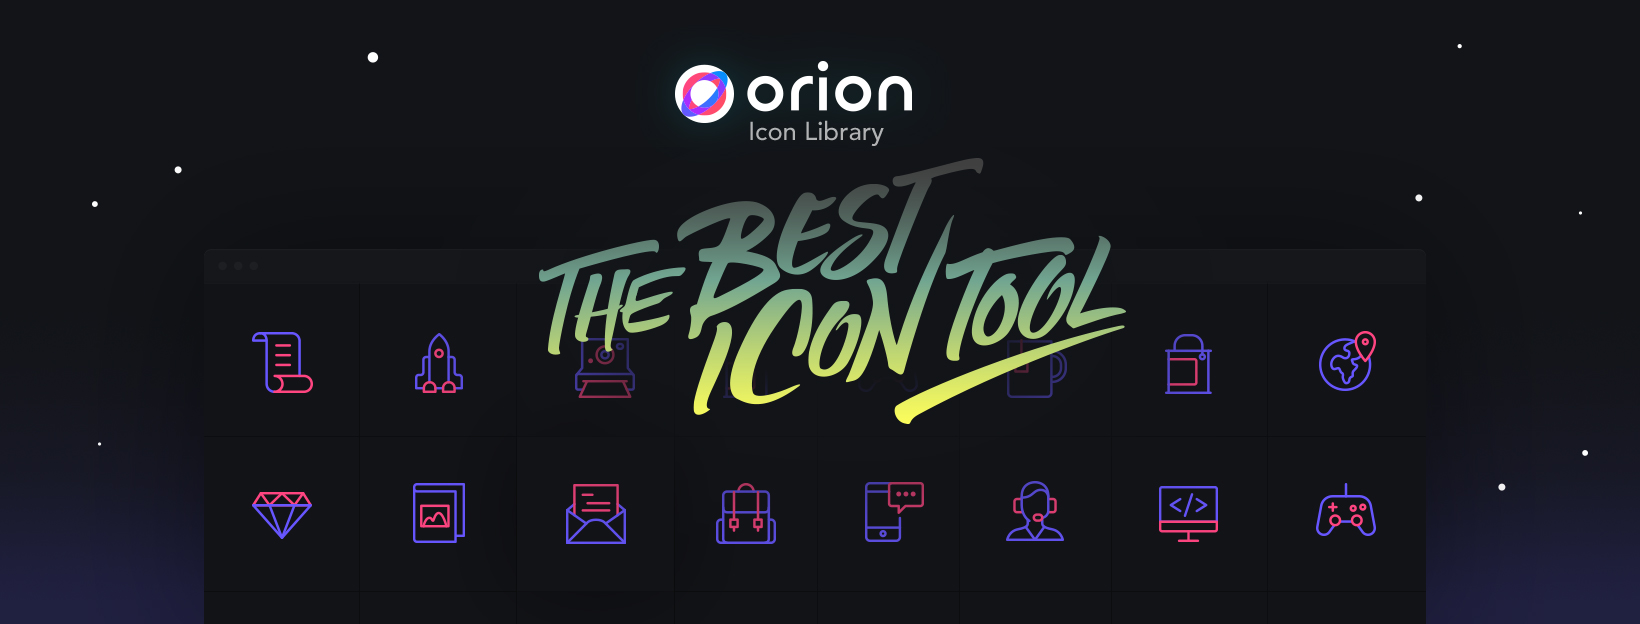 Orion - 6014 Free SVG Vector Icons